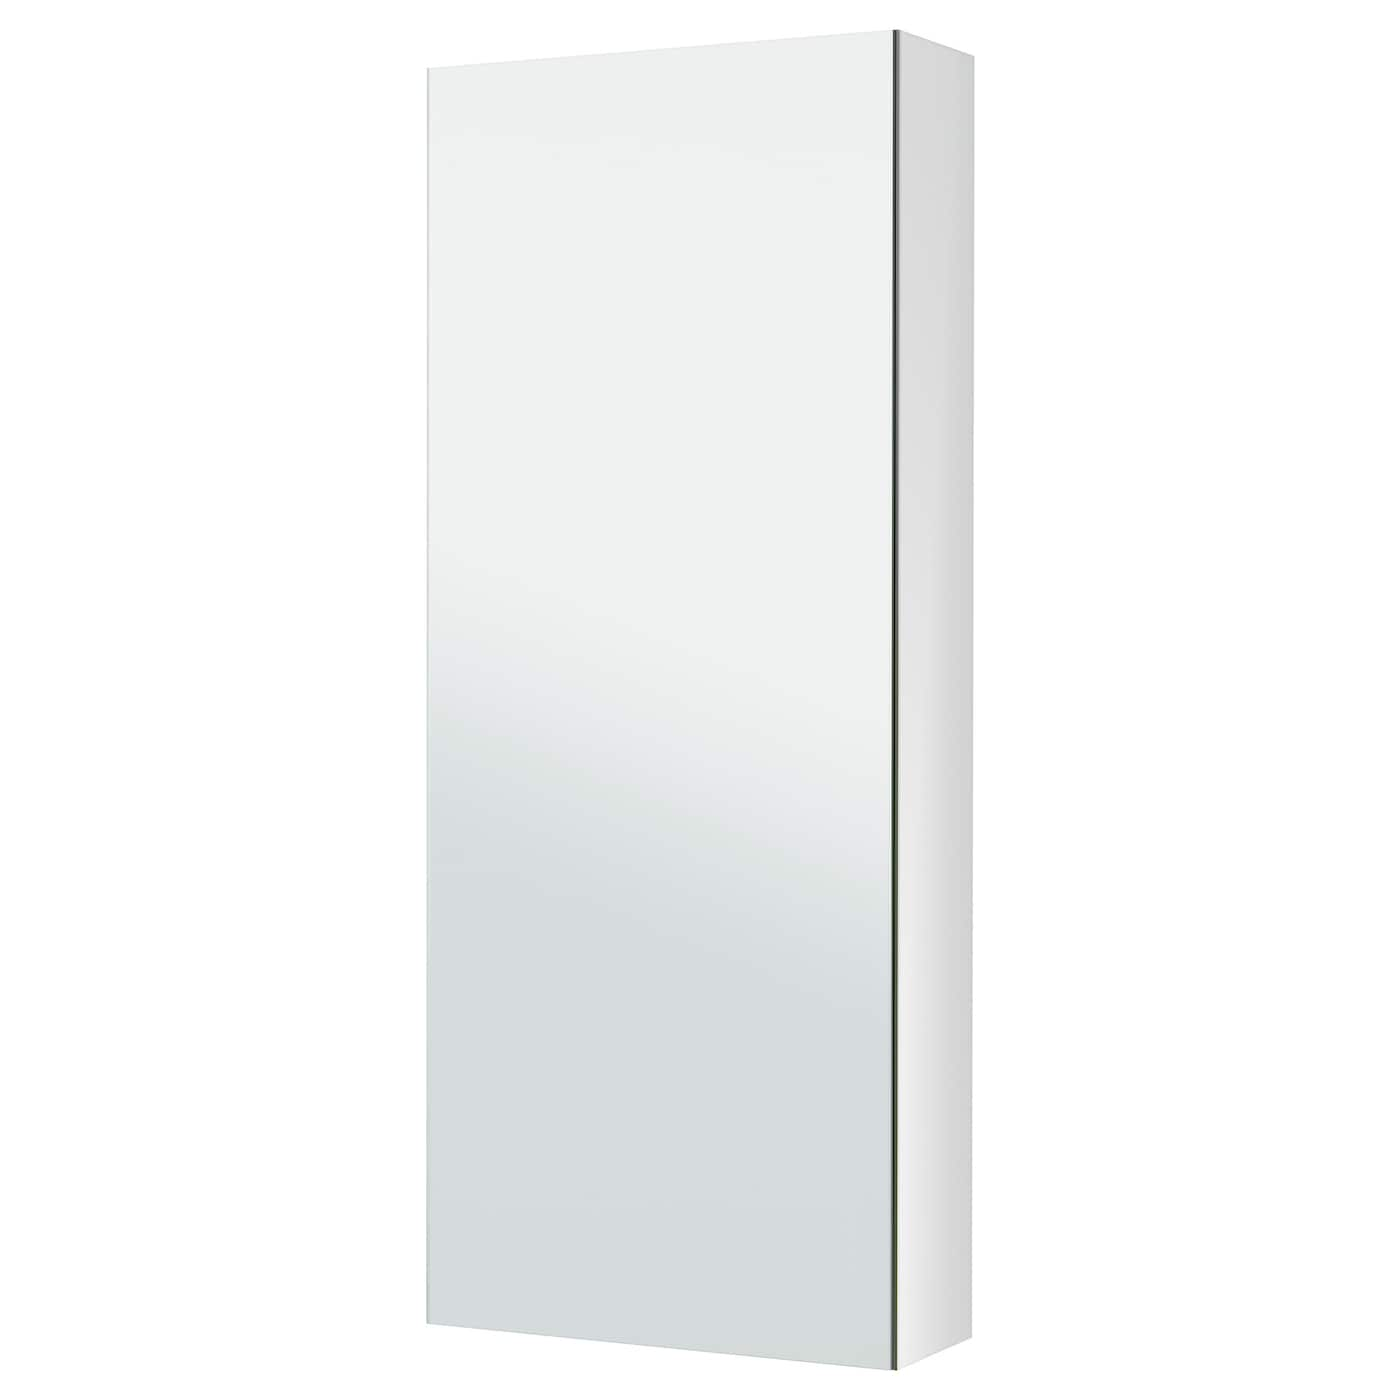 IKEA GODMORGON Mirror Cabinet With 1 Door Both On The Outside And Inside